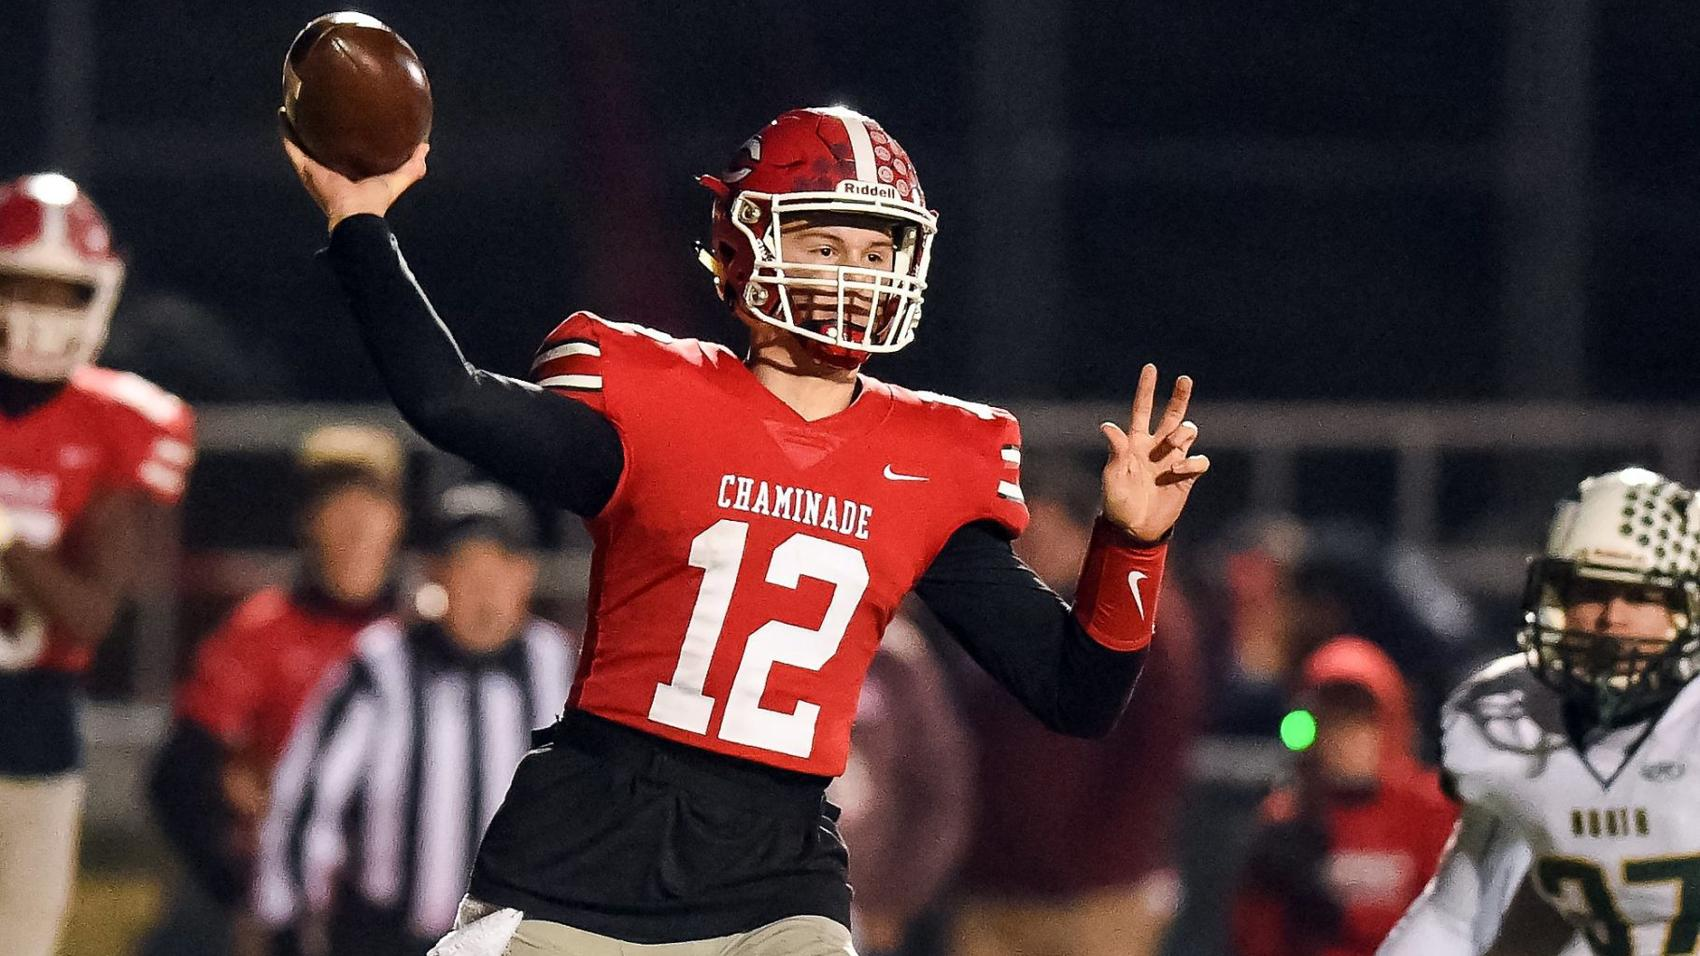 Chaminade's Brady Cook driven to prove to St. Louis that he belongs at Mizzou